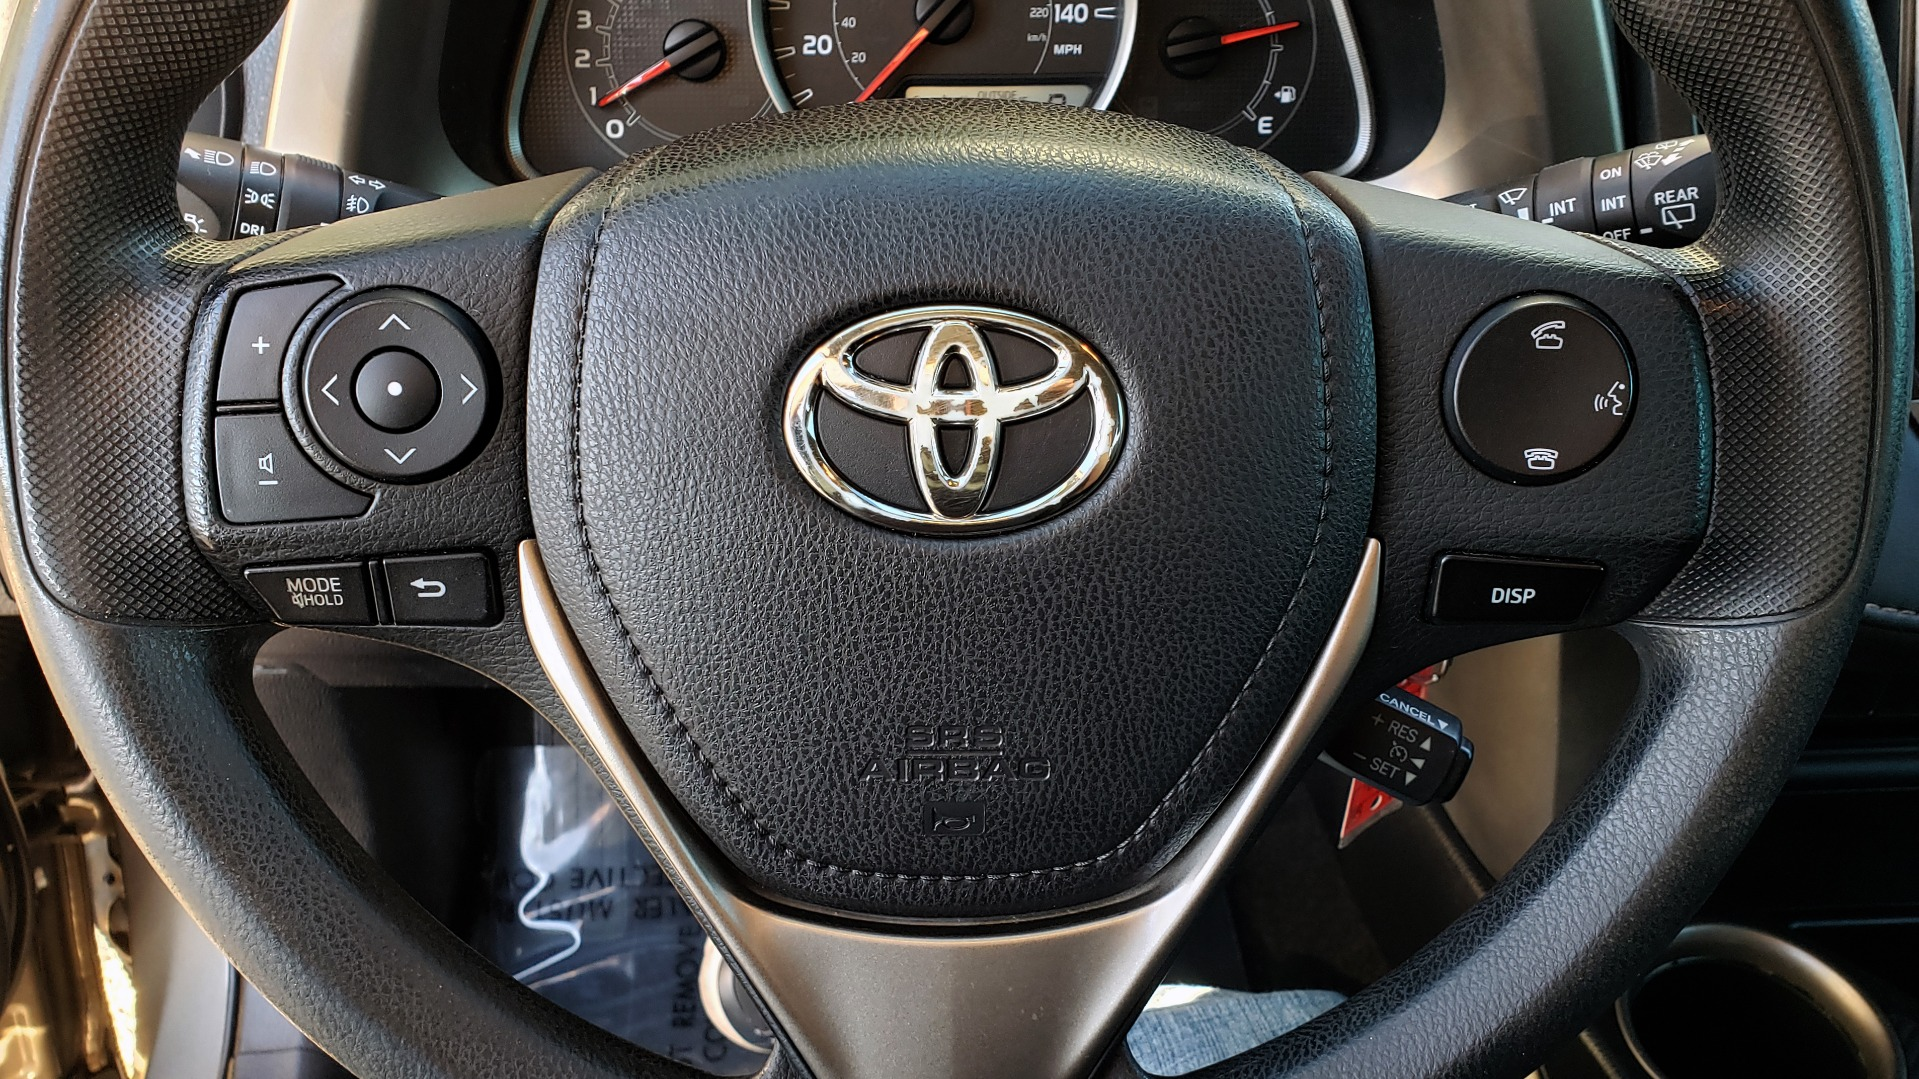 Used 2014 Toyota RAV4 XLE / FWD / 2.5L 4-CYL / 6-SPD AUTO / 17IN ALLOY / REARVIEW for sale $13,695 at Formula Imports in Charlotte NC 28227 19